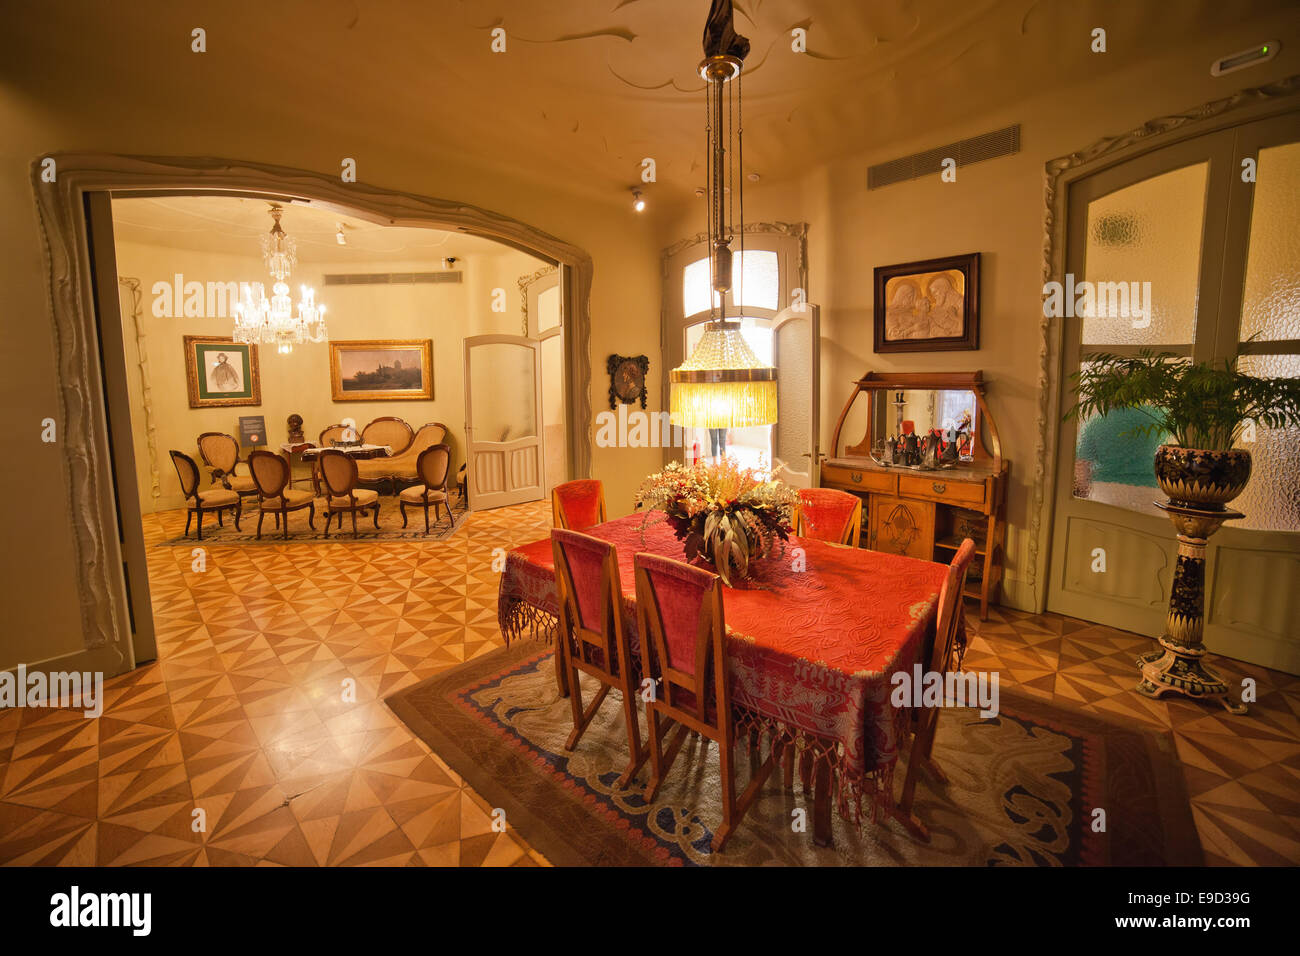 Where Buy Dining Table And Chairs